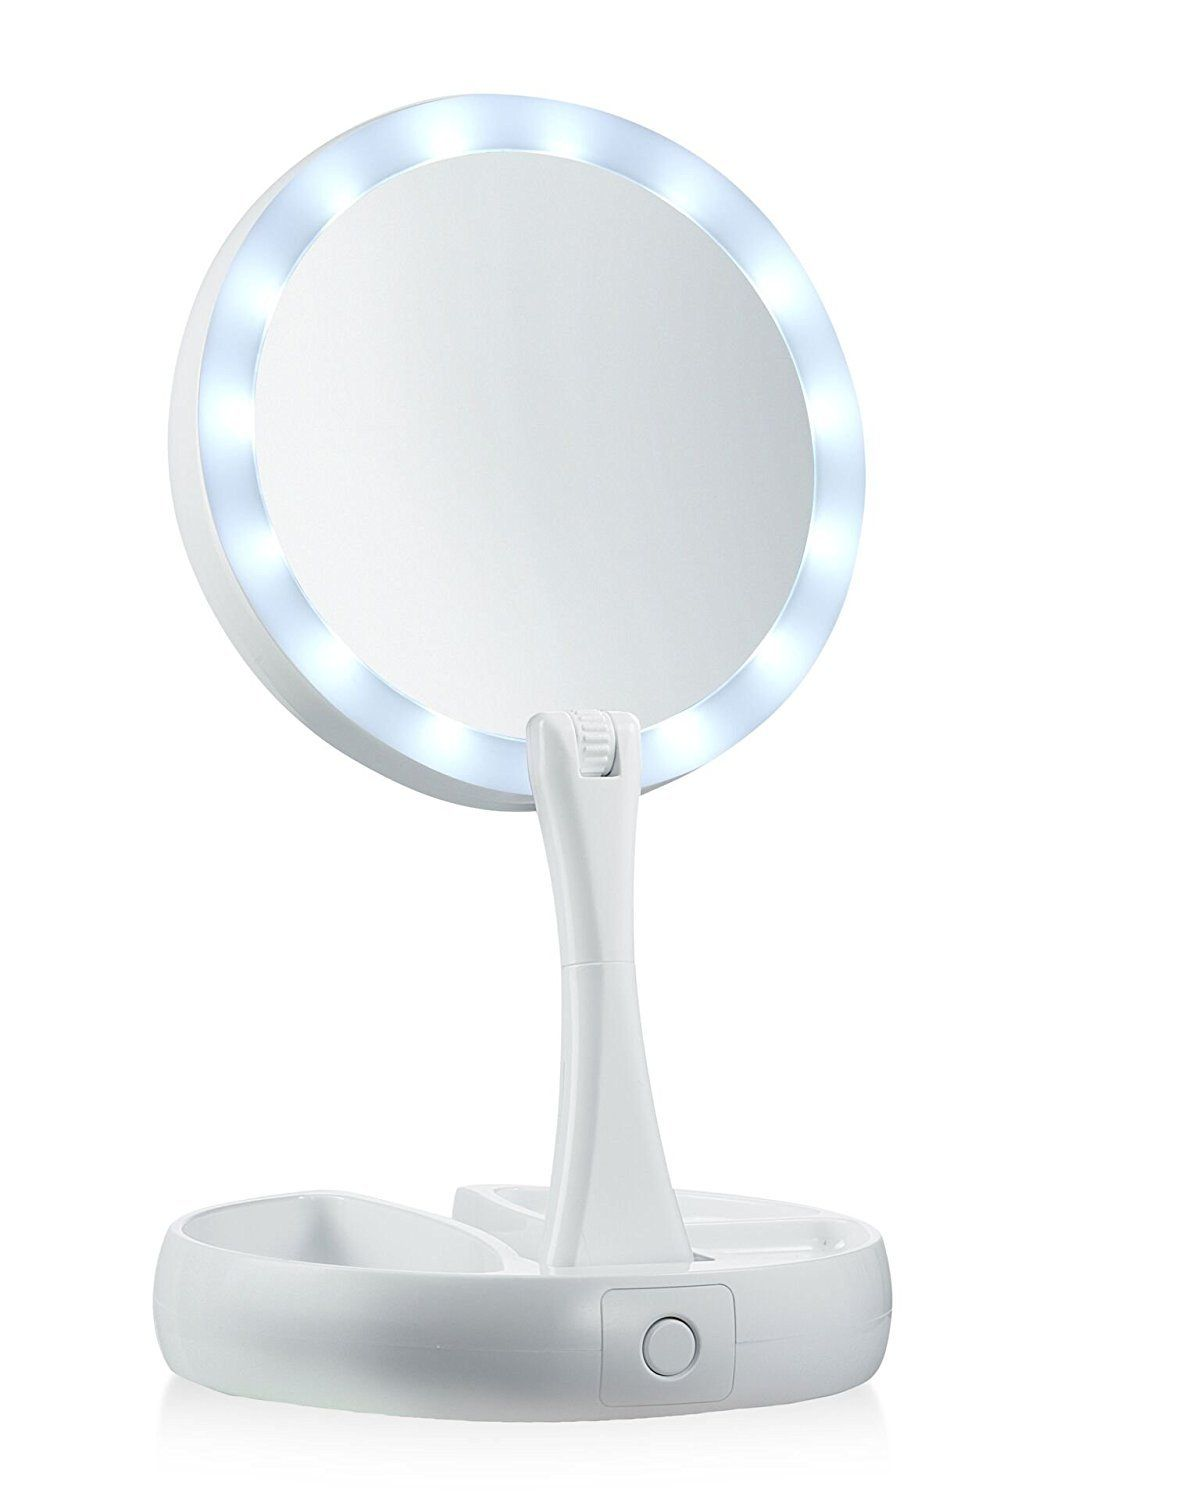 My Foldaway Mirror The Lighted Double Sided Vanity Mirror 10x Magnification As Seen On Tv Led Makeup Mirror Mirror With Lights Mirror